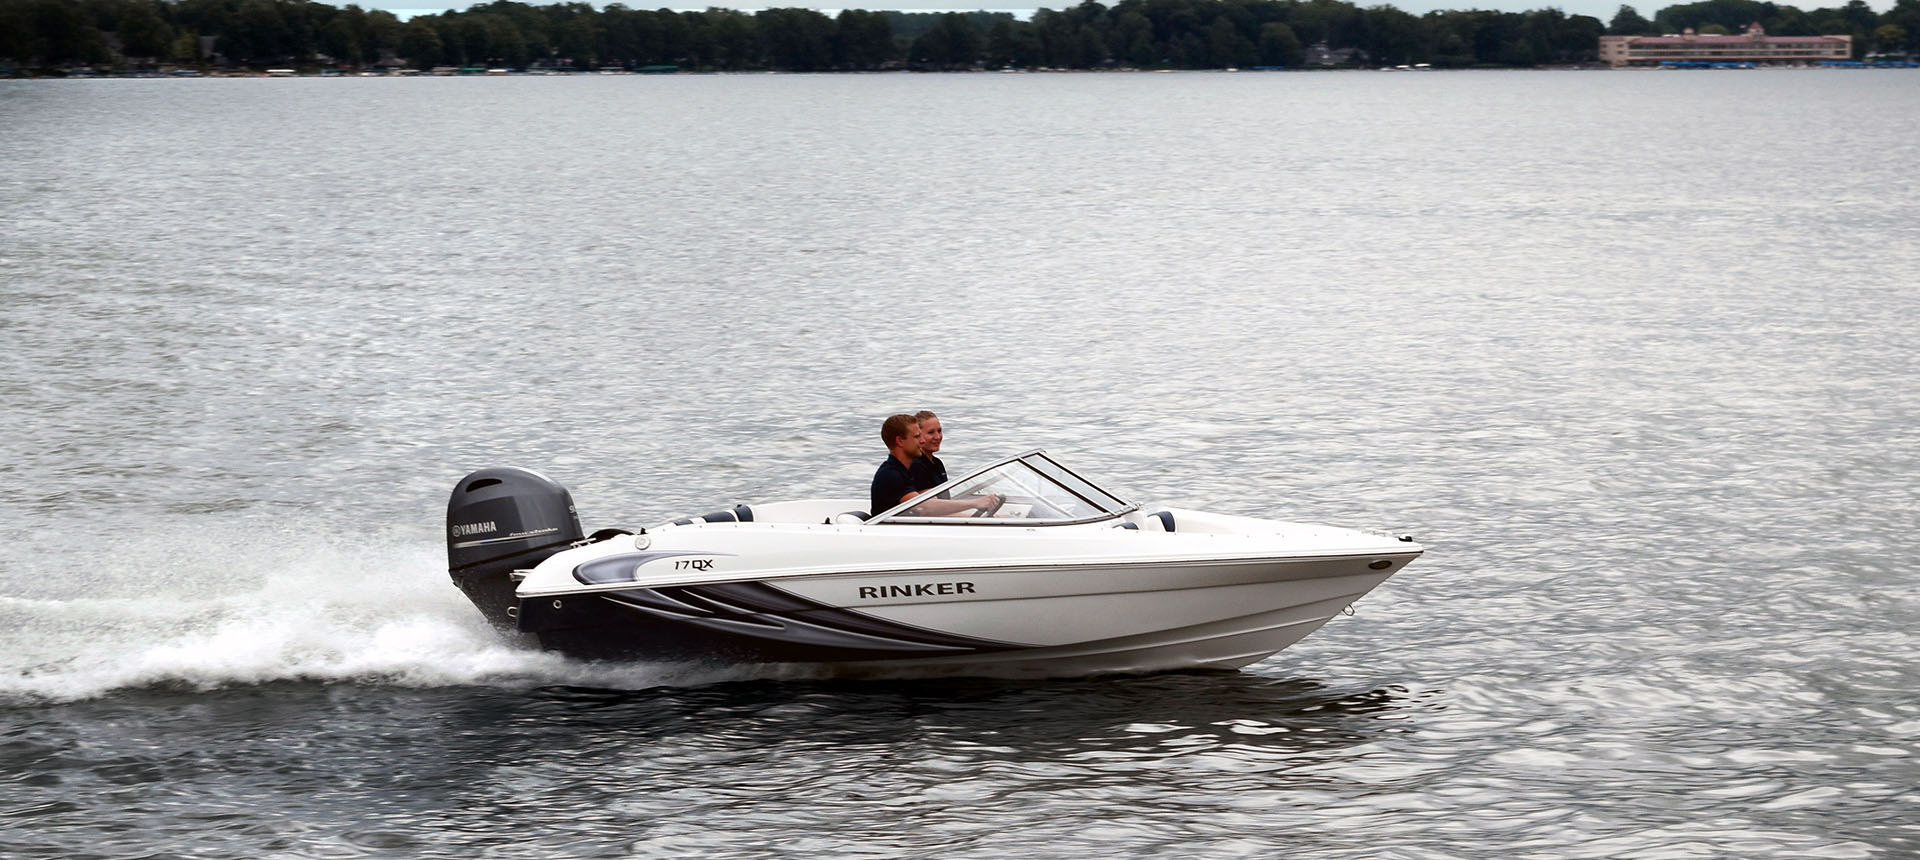 Pic of 17QX Outboard boat underway